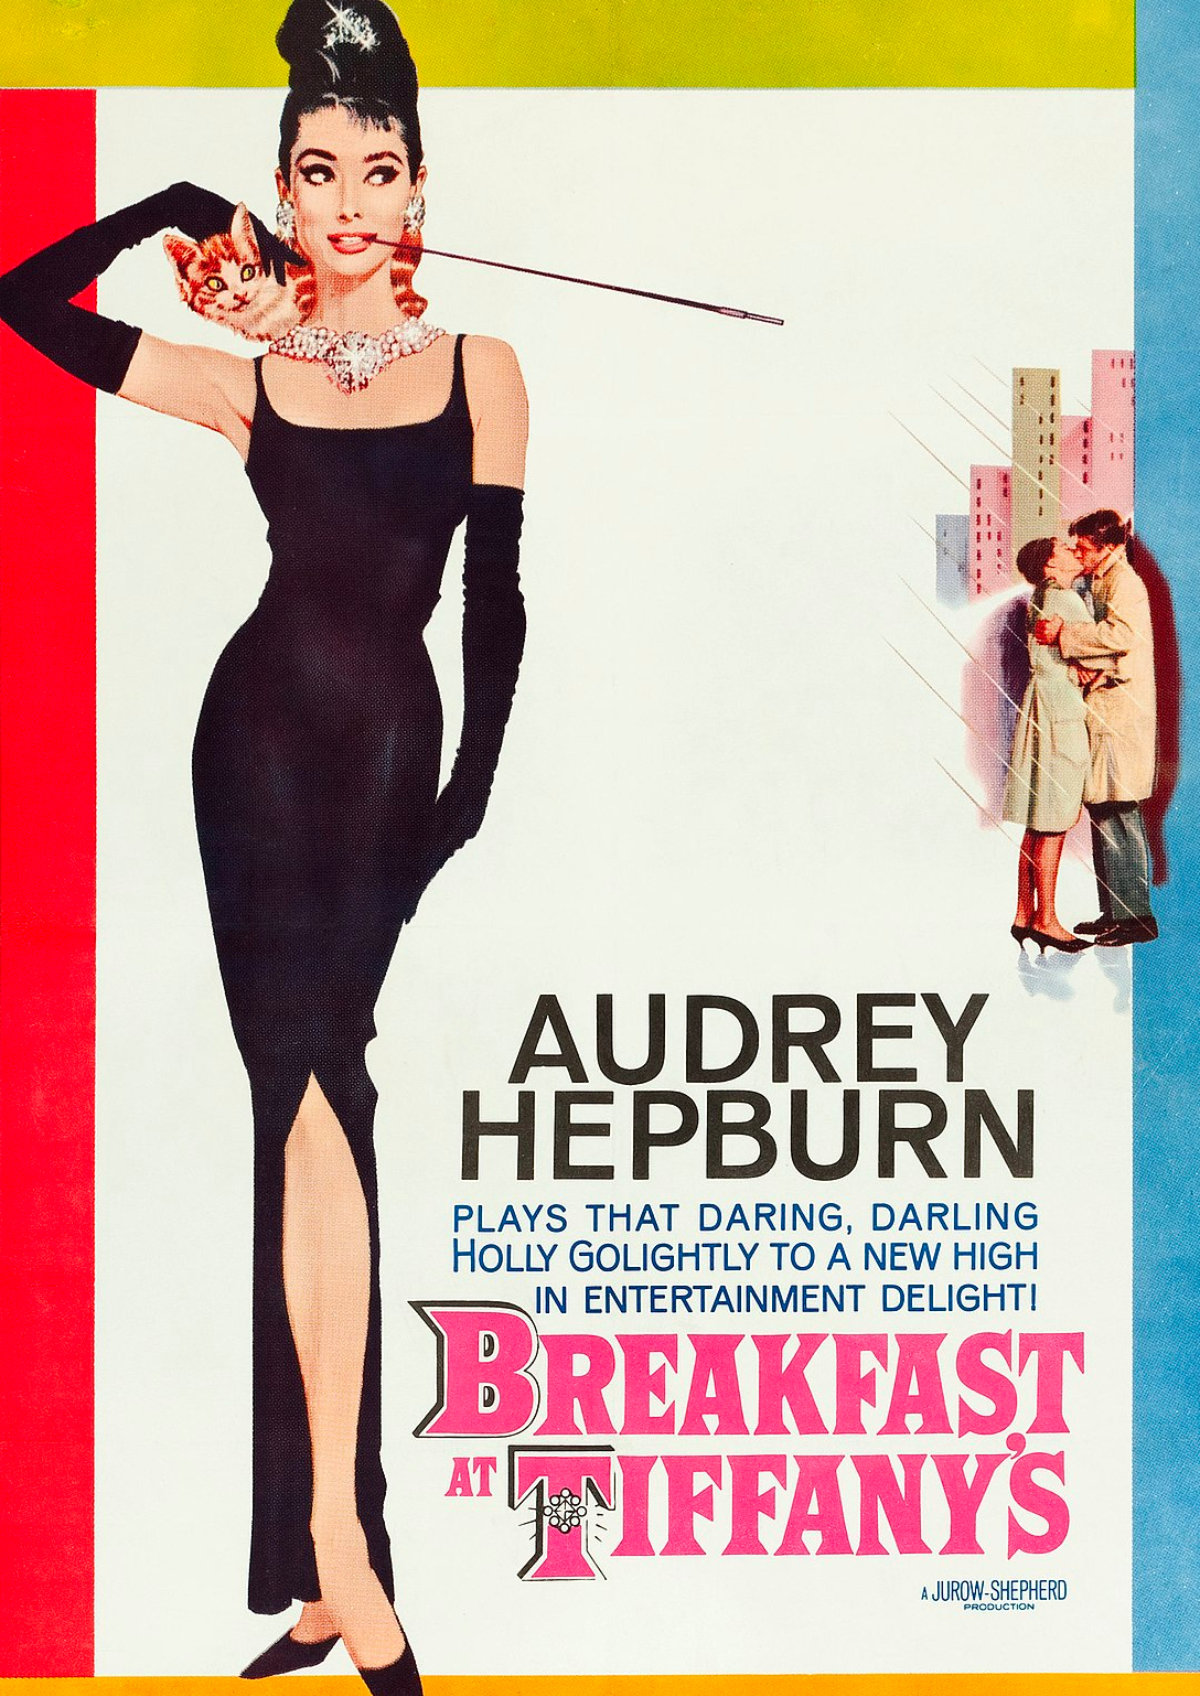 'Breakfast at Tiffany's' movie poster